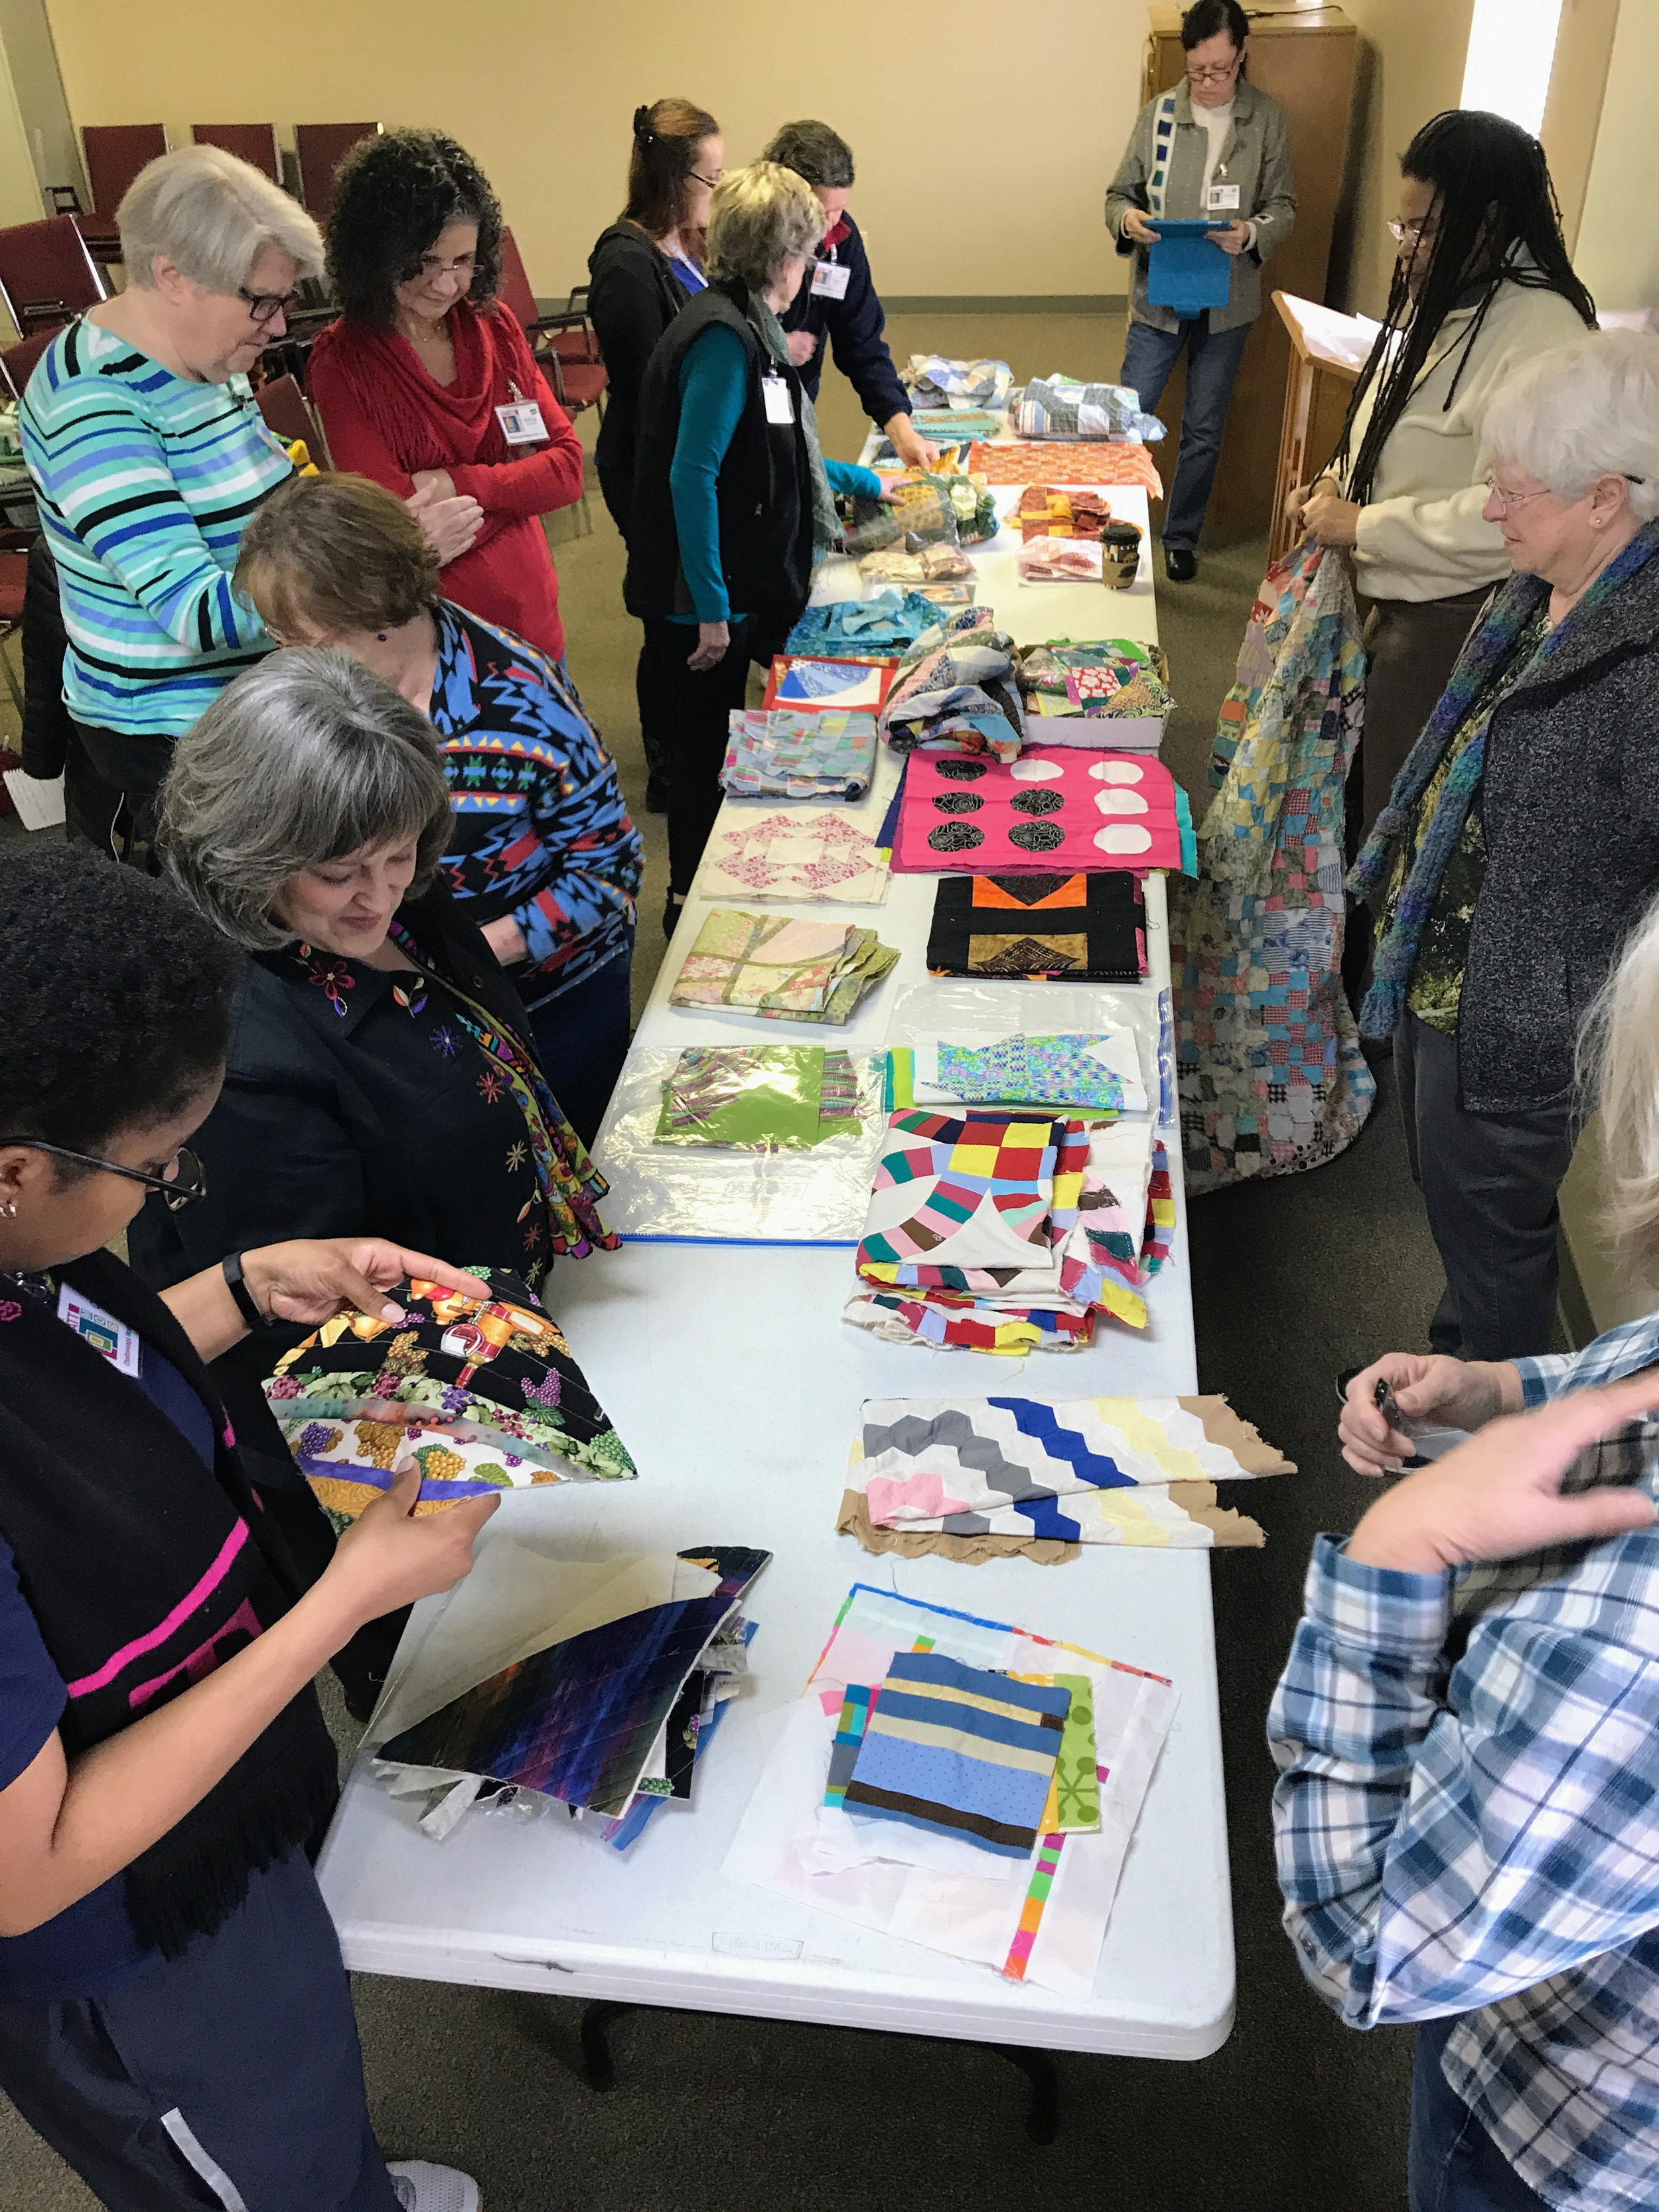 Challenge participants examine the UFOs, orphan blocks, and quilt tops up for grabs.